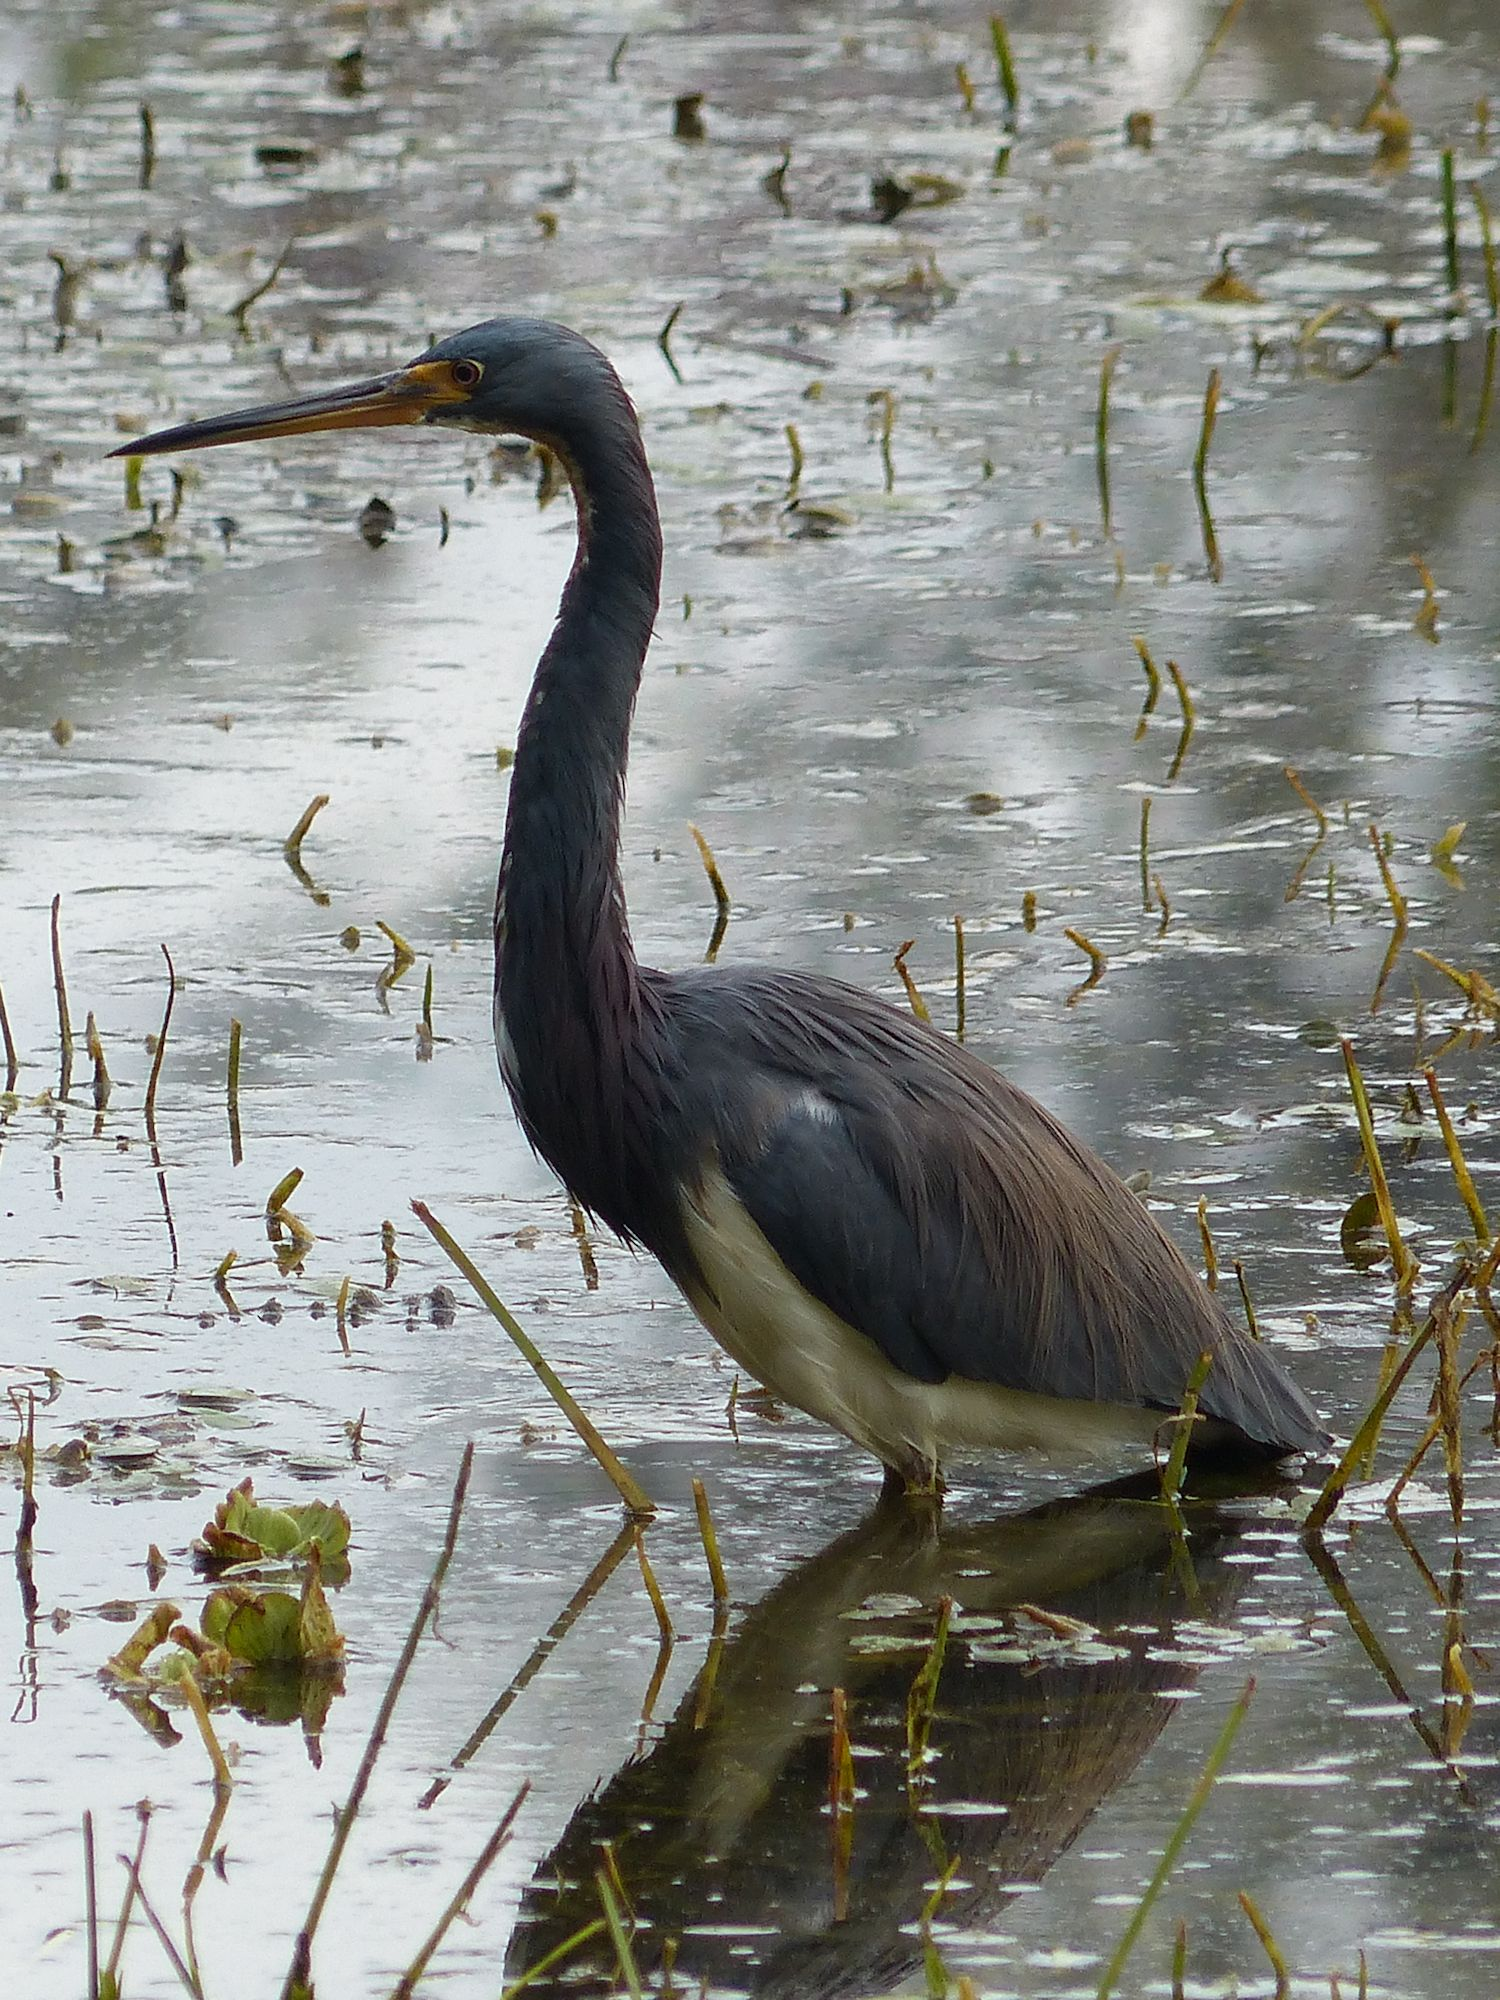 The bird formerly known as the Louisiana Heron, now called the Tri-colored Heron.